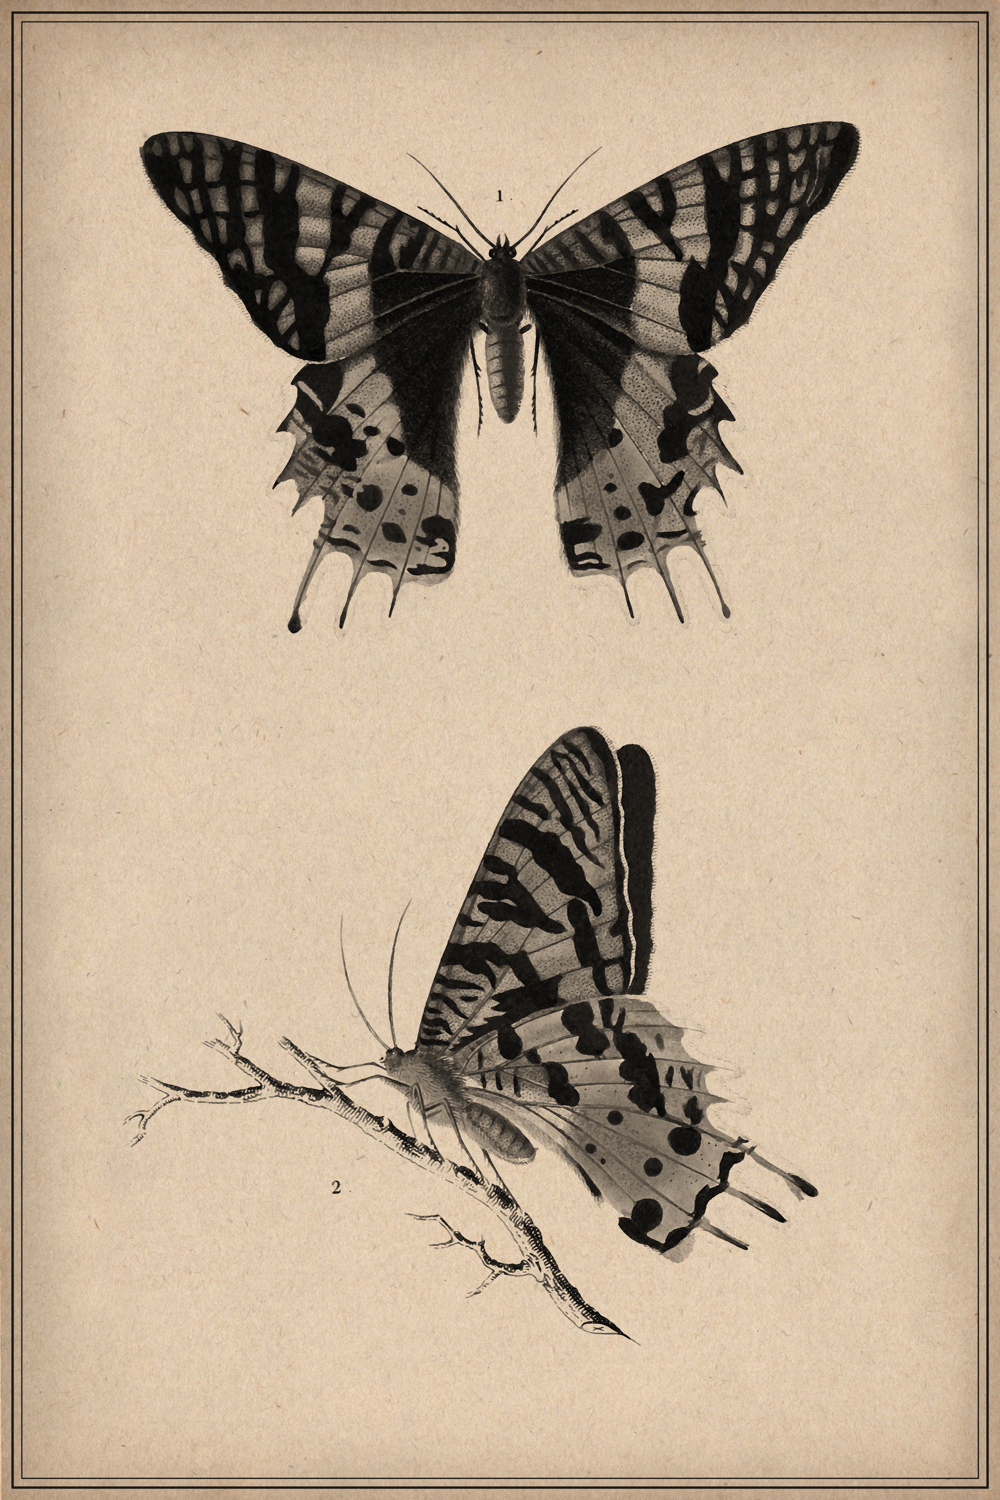 Vintage scientific illustration of front and profile of a butterfly